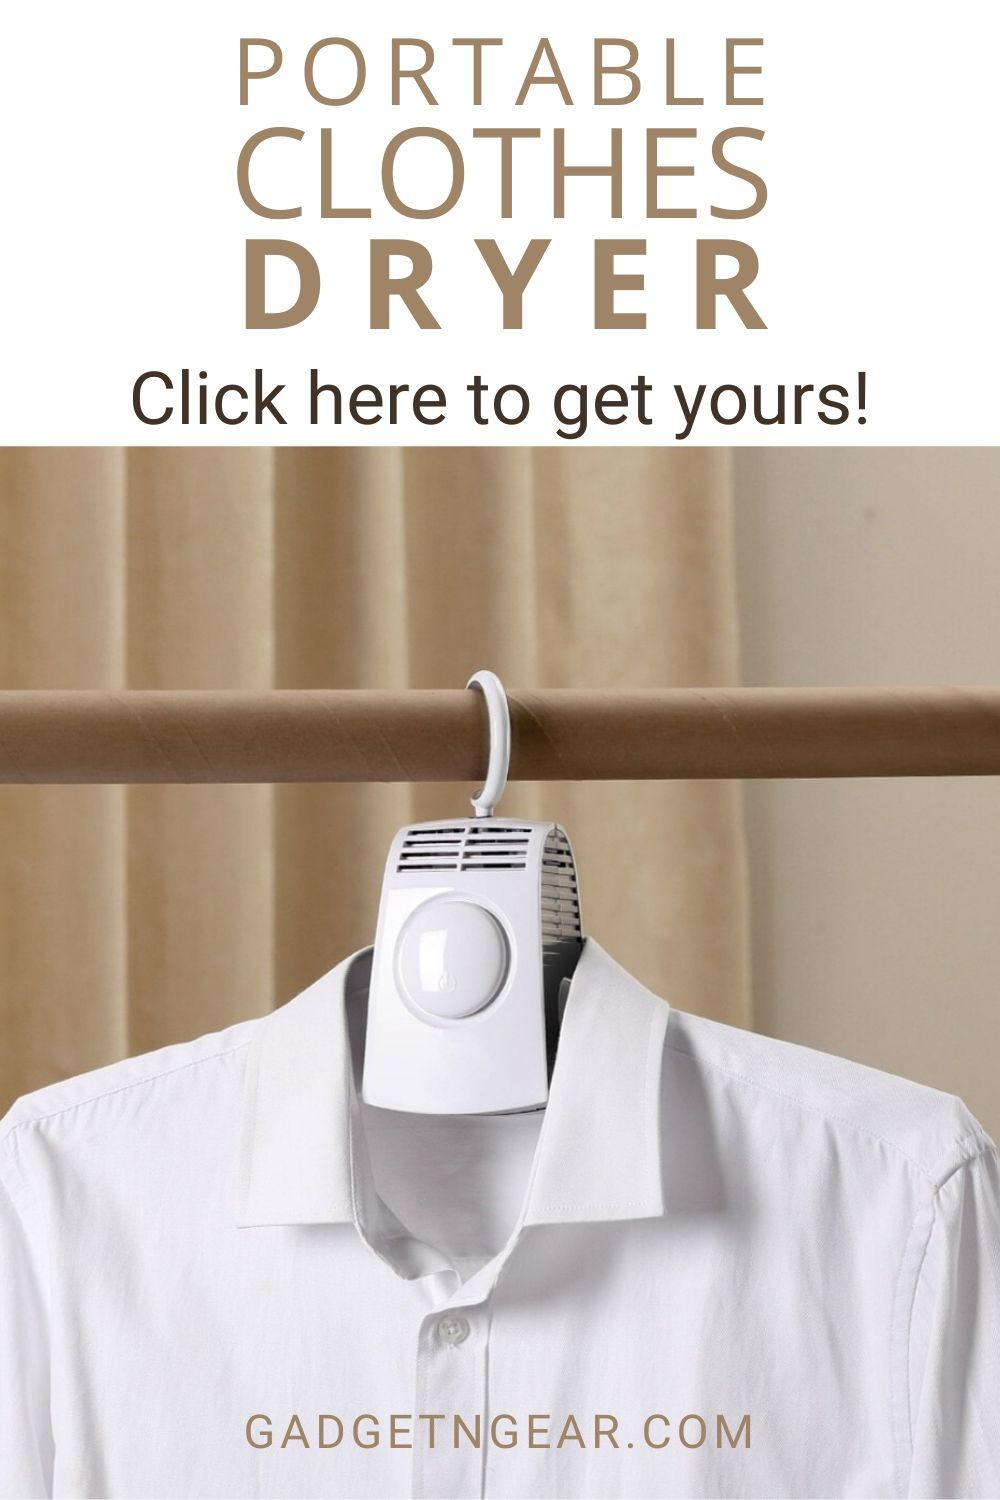 Easy Portable Clothes Dryer In 2020 Portable Clothes Dryer